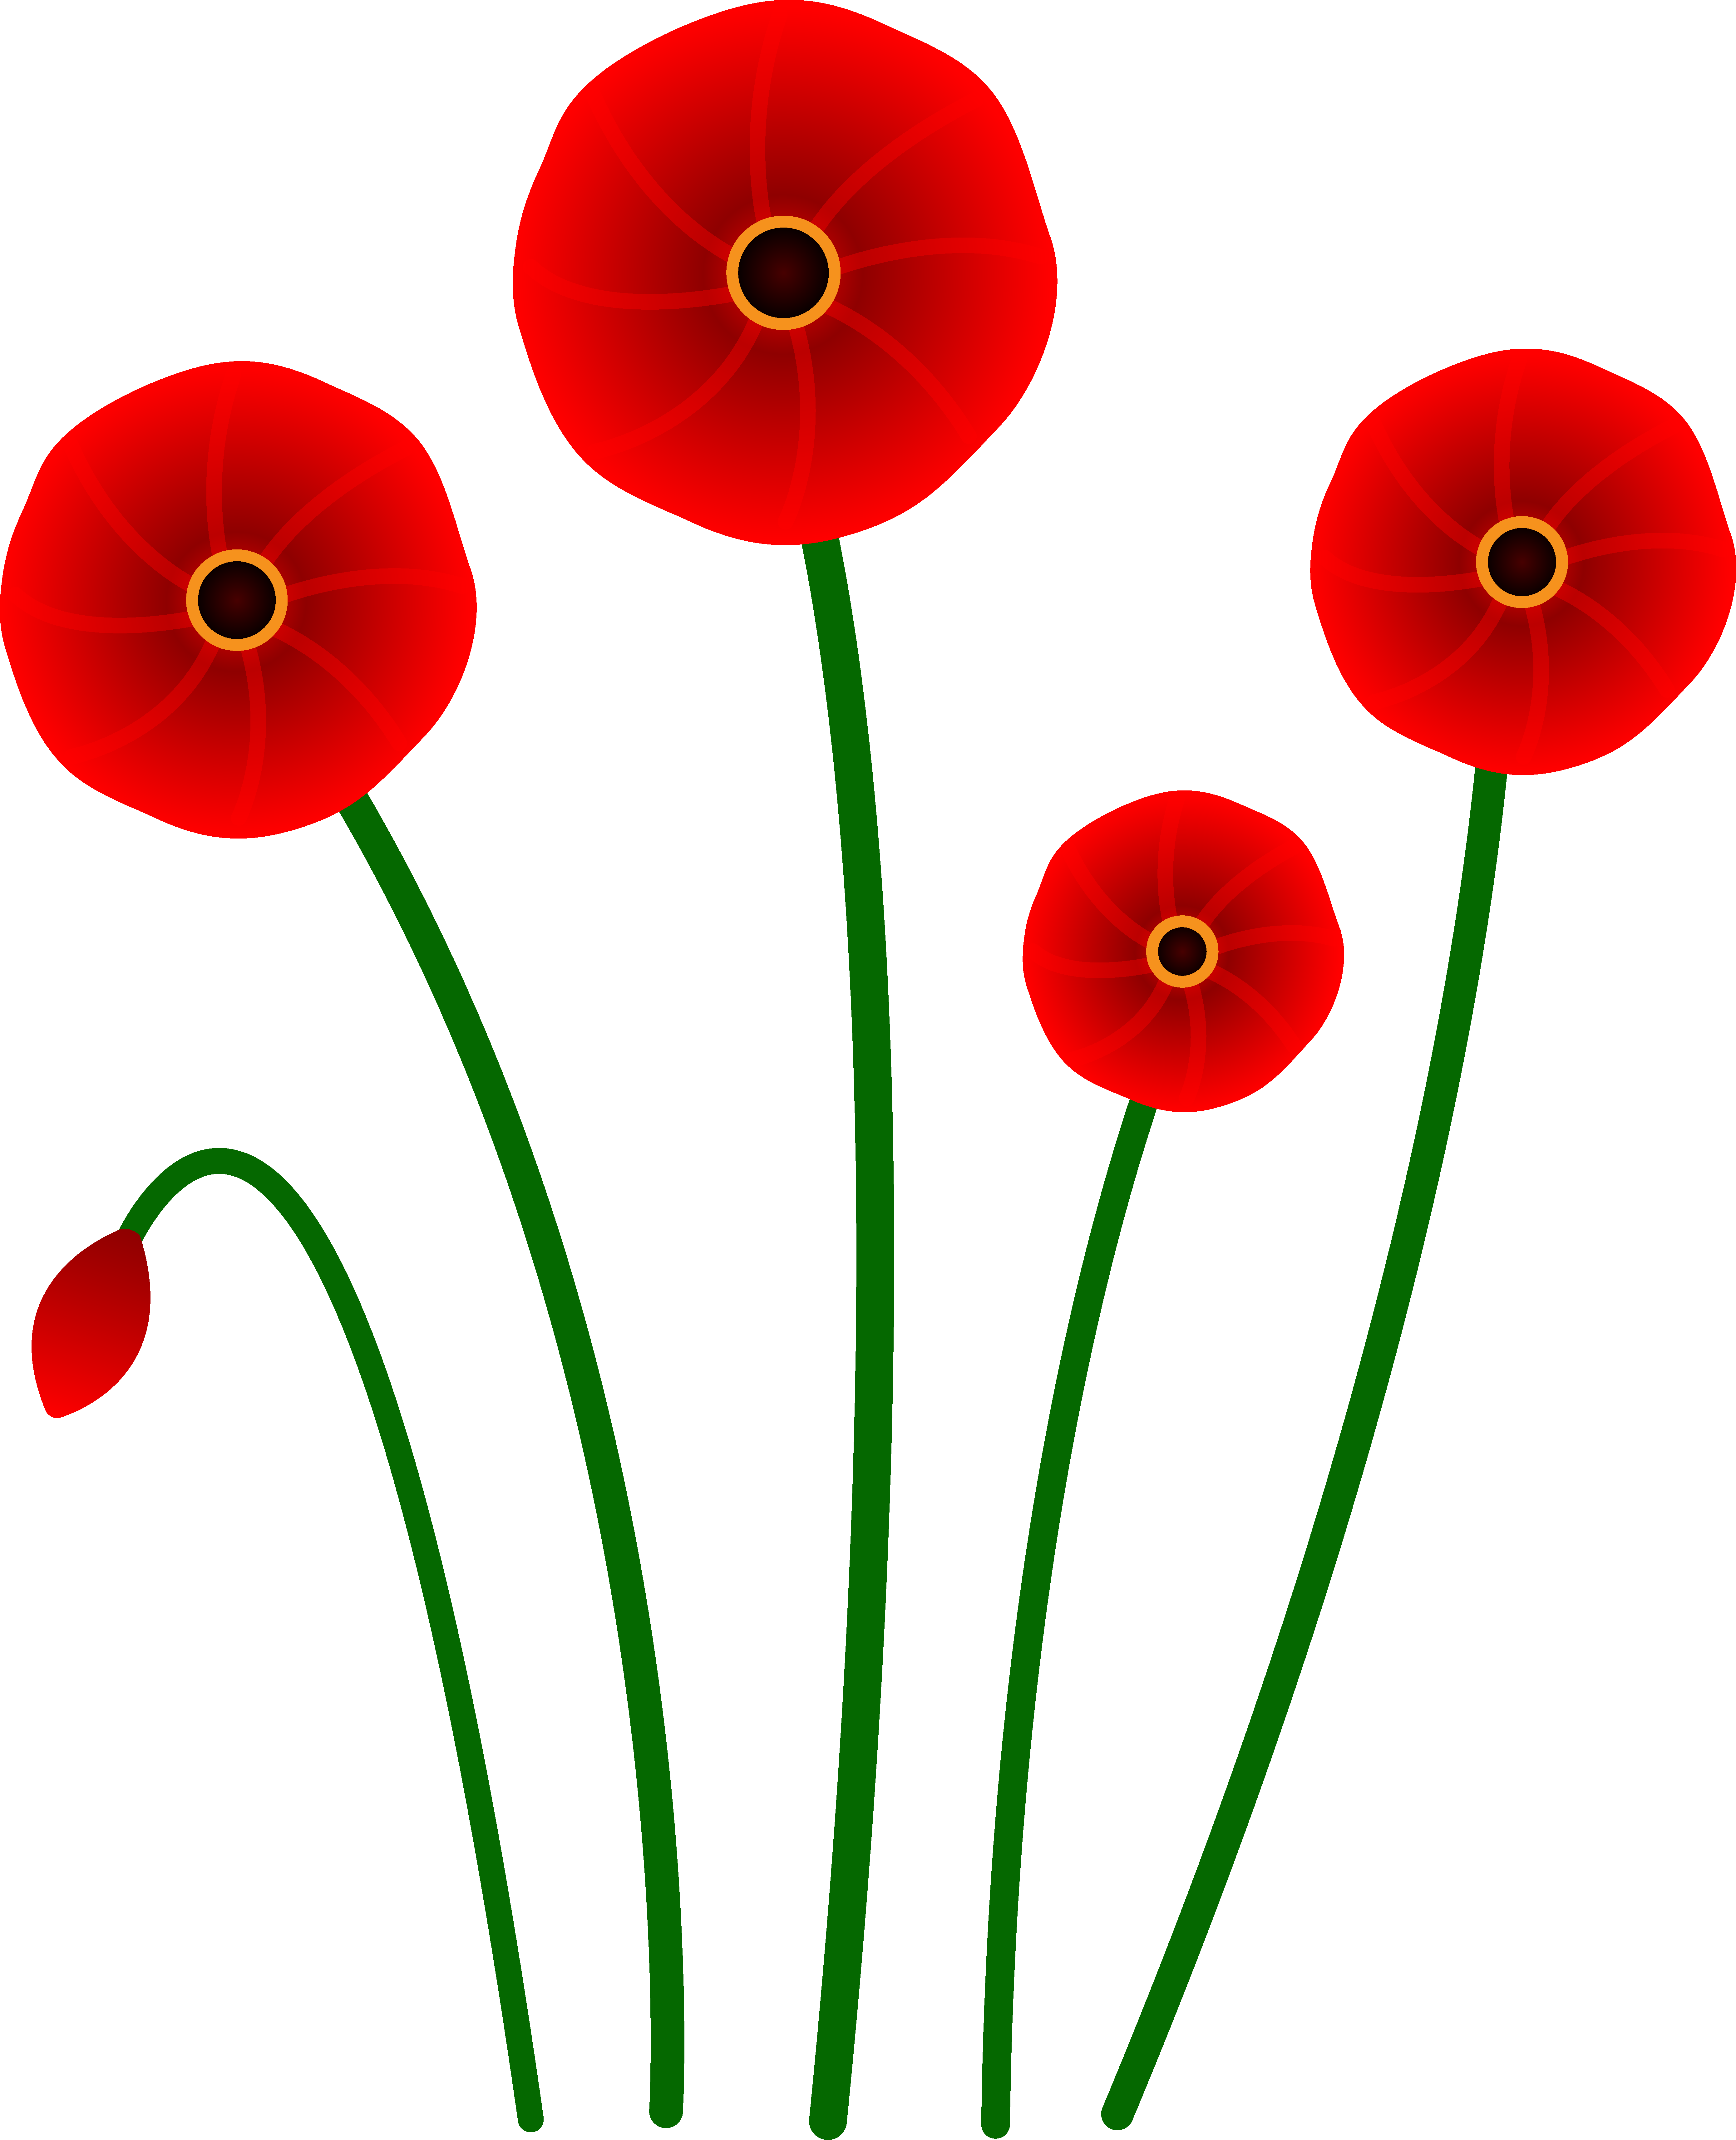 5560x6855 Red Flower Border Clip Art Free Clipart Images 3